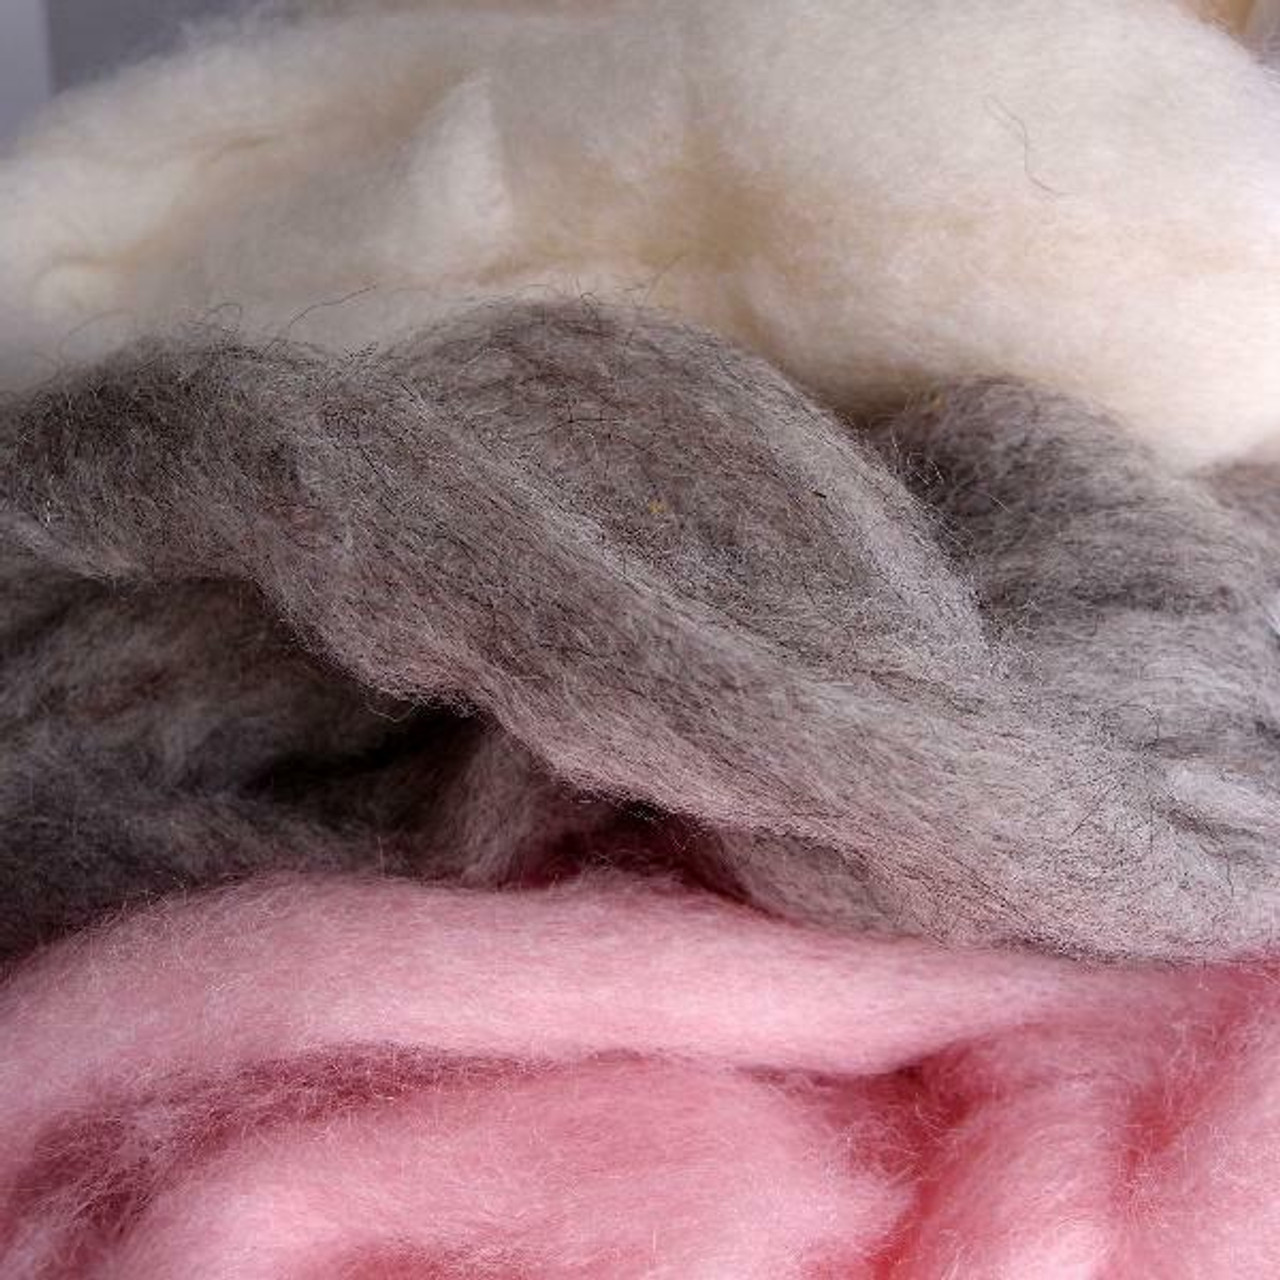 Wholesale White Wool Roving Fiber. What is Wool Roving Fiber? Wool roving refers to wool fiber that has been processed but not yet spun into yarn. They are mainly prepared for spinning to create yarn but they may also be used for specialized forms of felting, knitting or other textile arts.